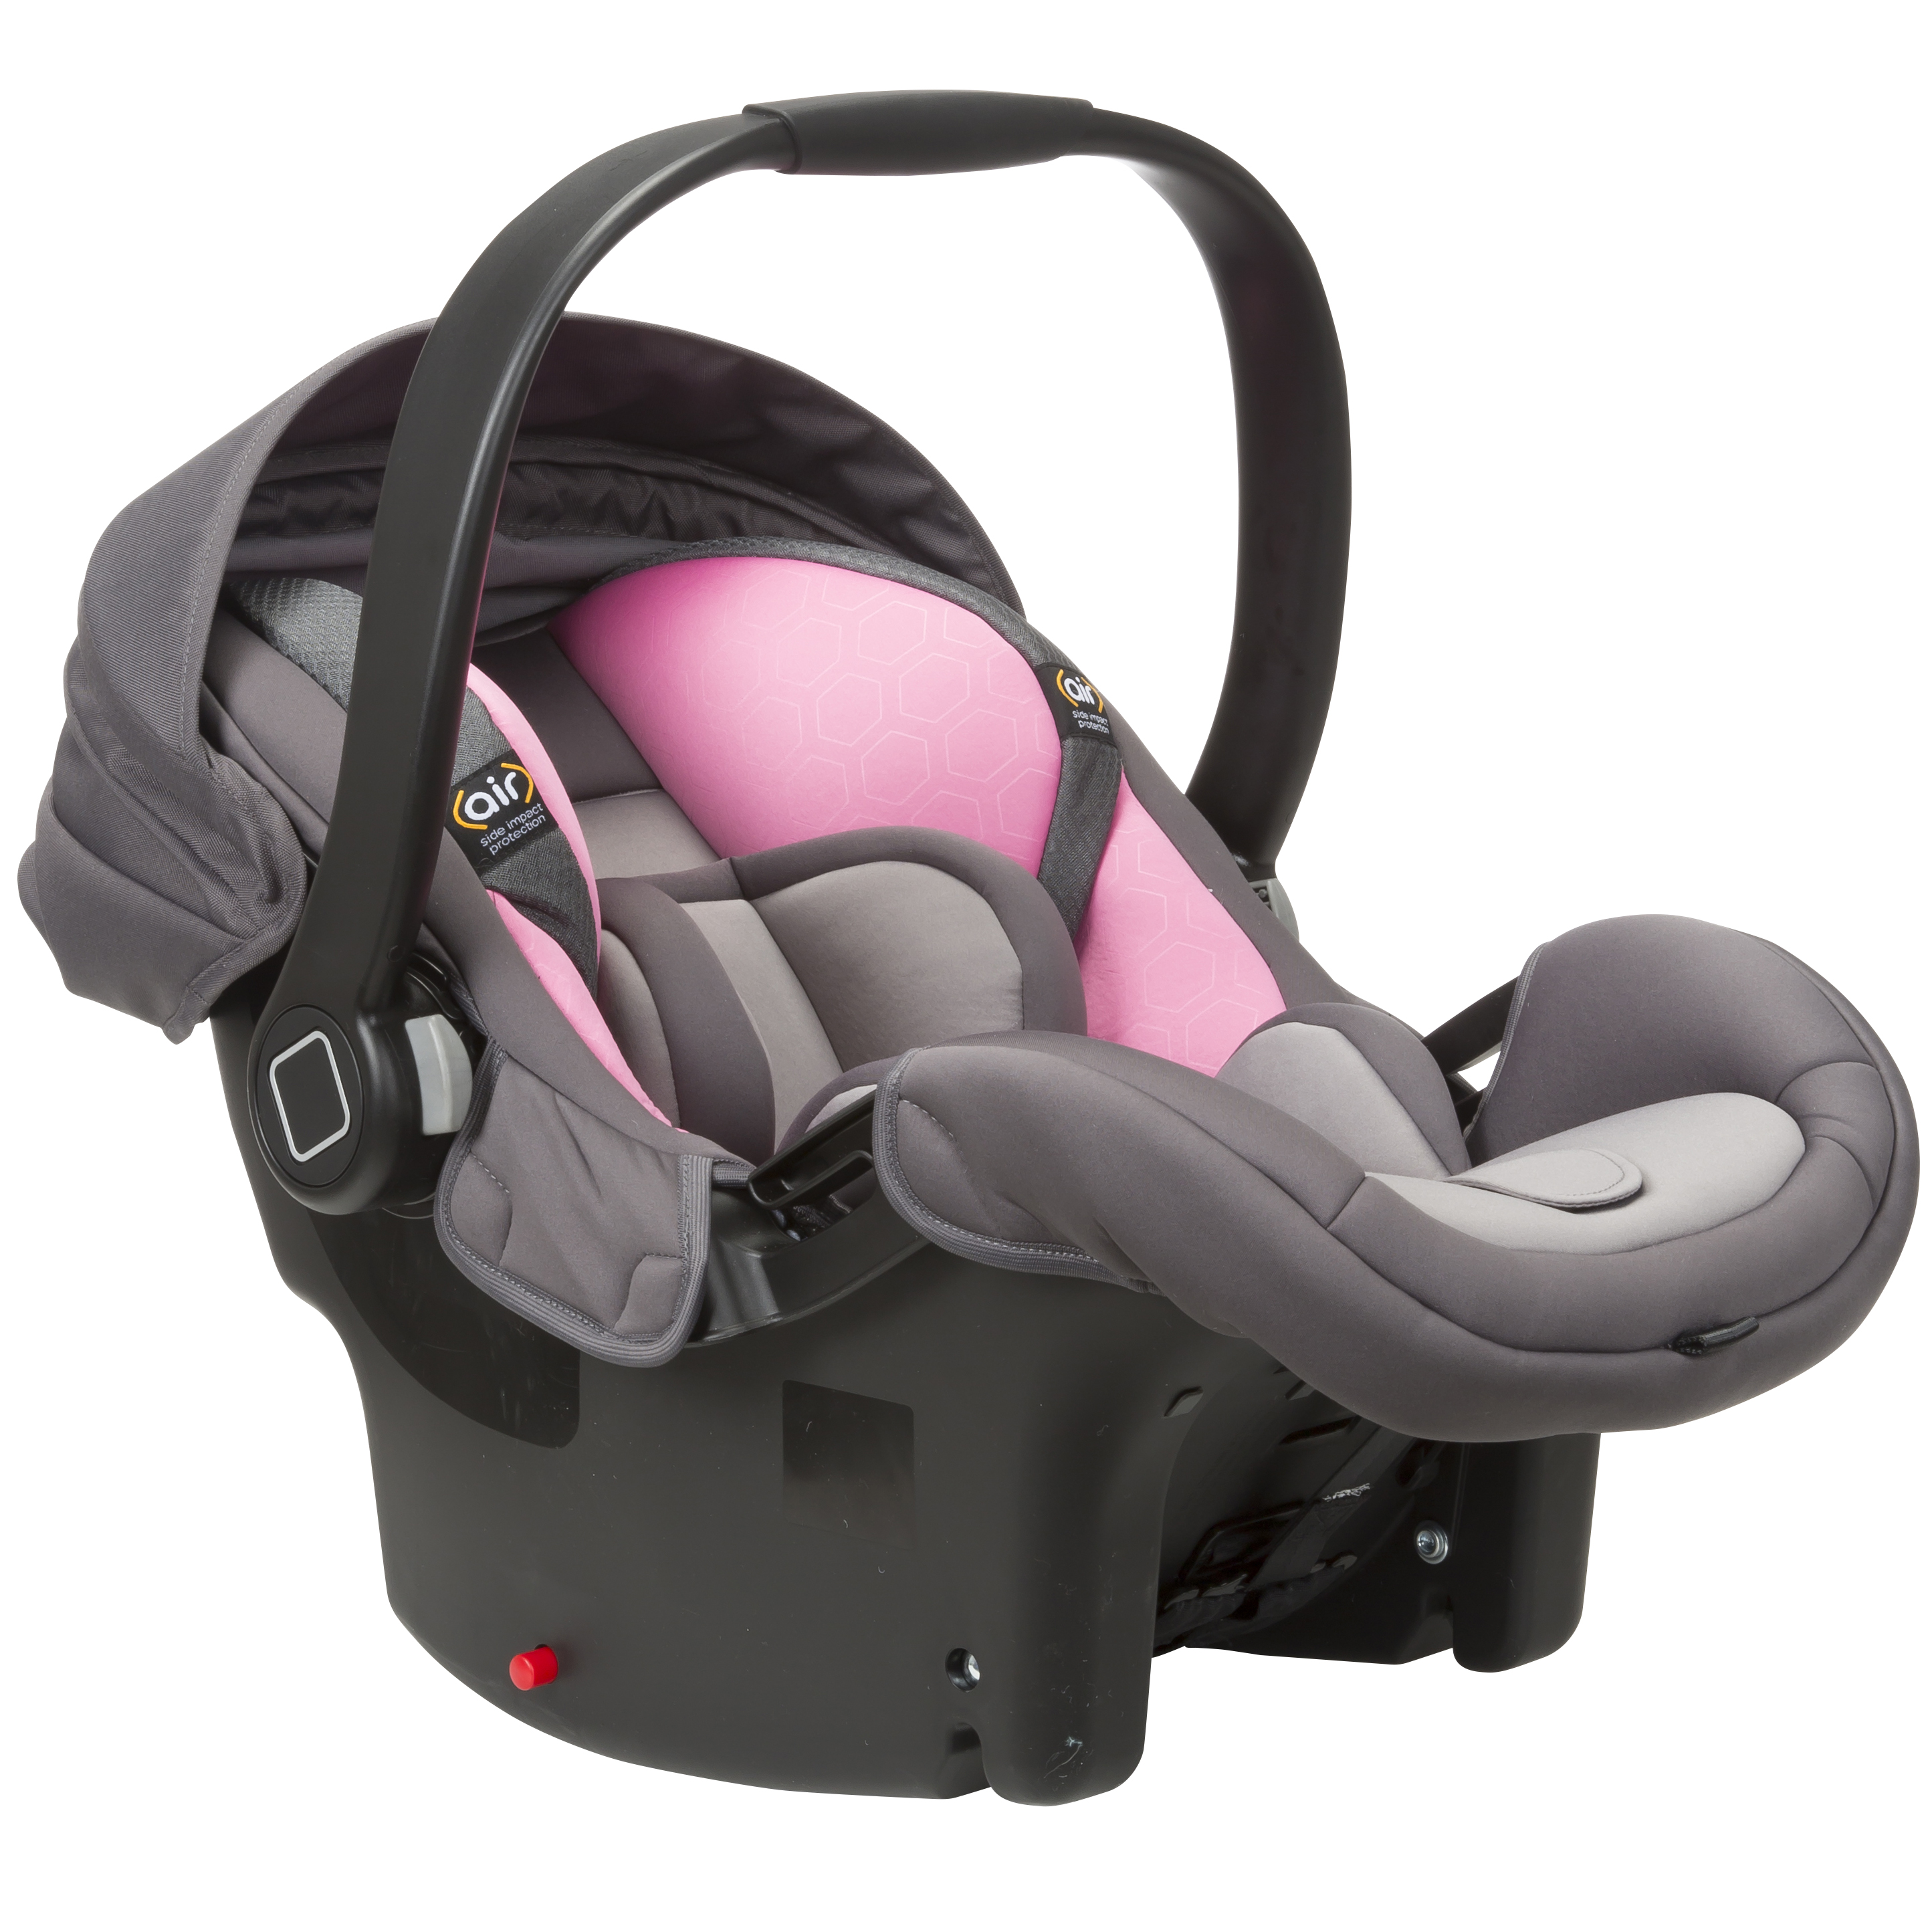 Safety 1st Onboard35 Air 360 Infant Car Seat Blush Pink Hx